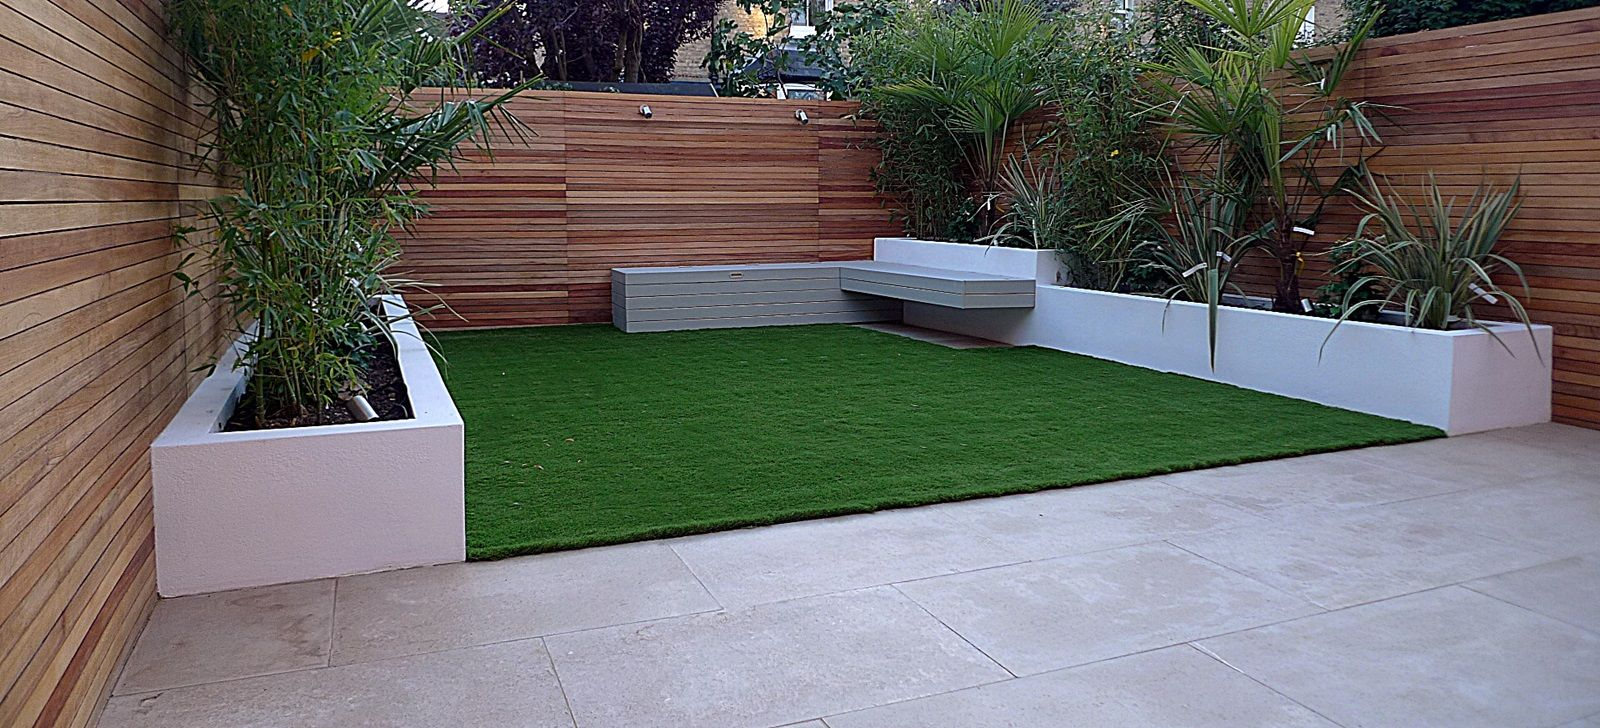 Garden Design Artificial Grass modern garden design raised beds hardwood privacy screen ceadr